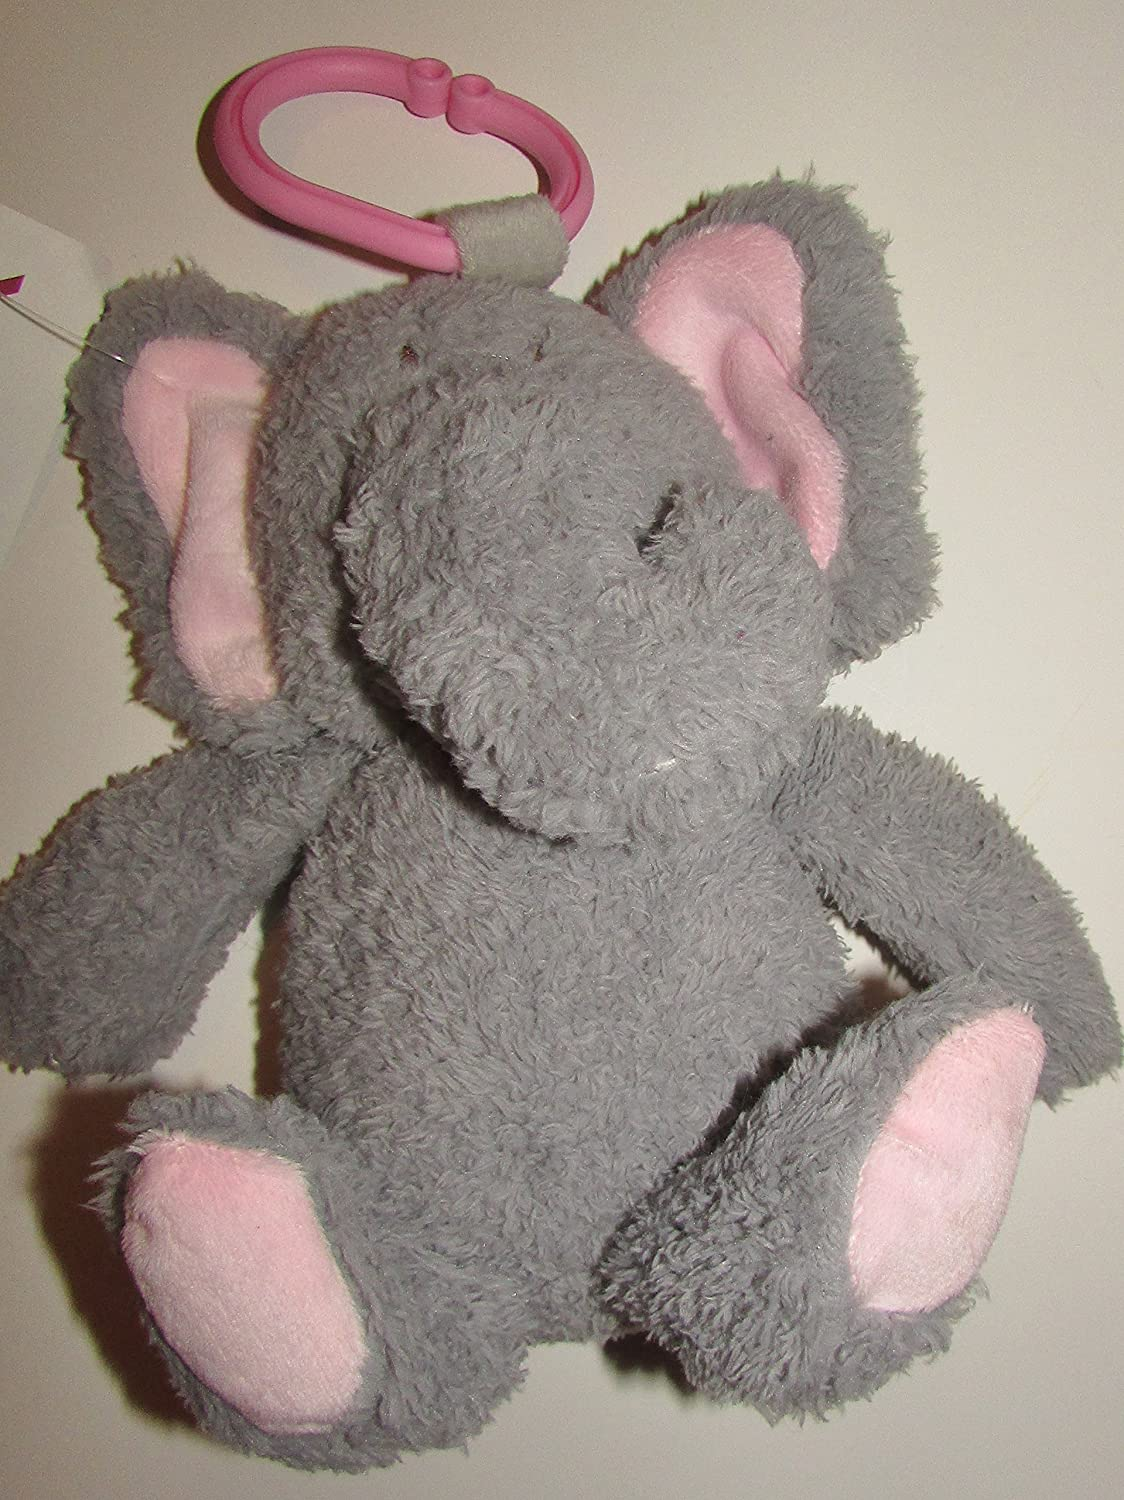 Plush Elephant With Crinkle Ears and Rattleサウンドグレー/ピンククリップfor Crib /ベビーカー   B073K2XYMG